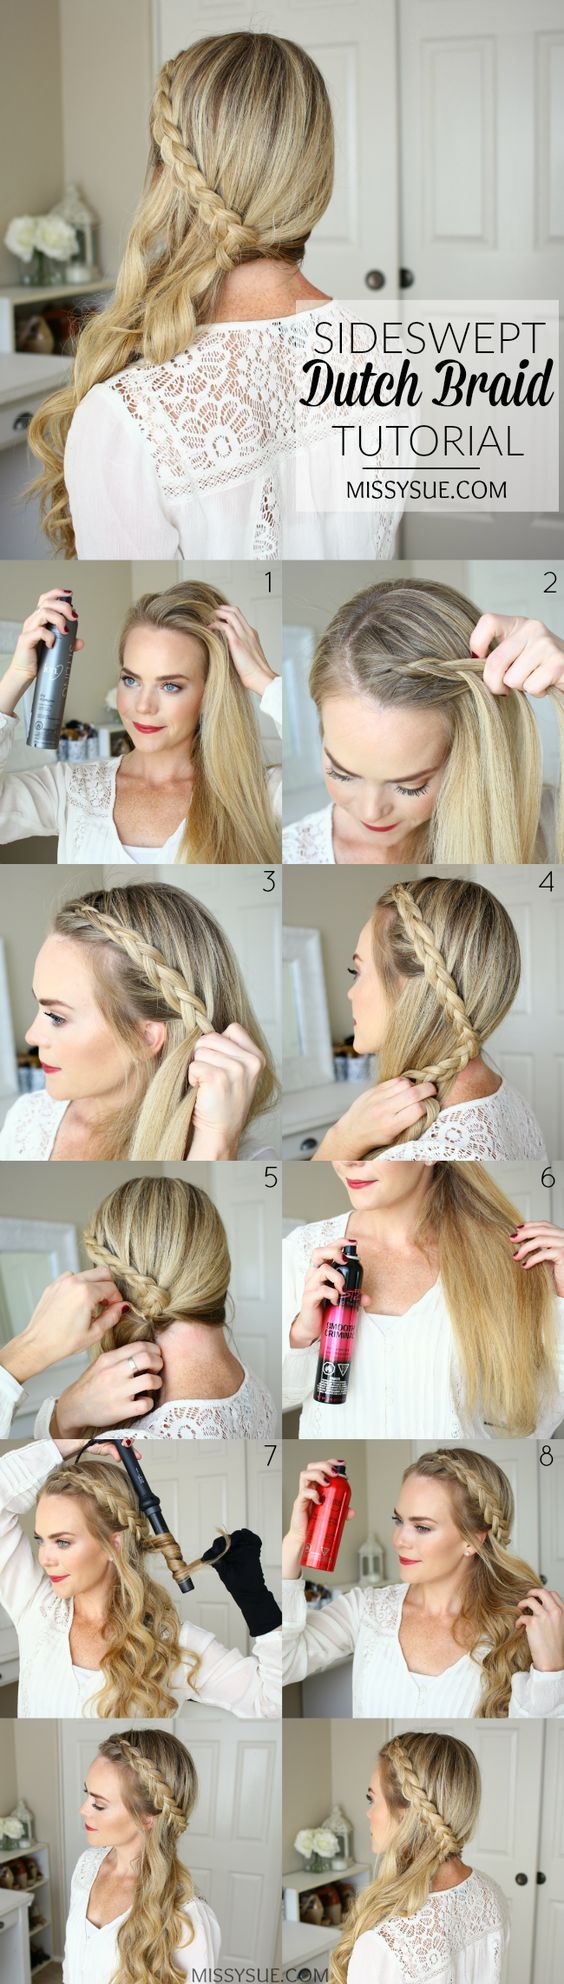 Fade to fall hair and makeup tutorial easy hairstyles tutorials